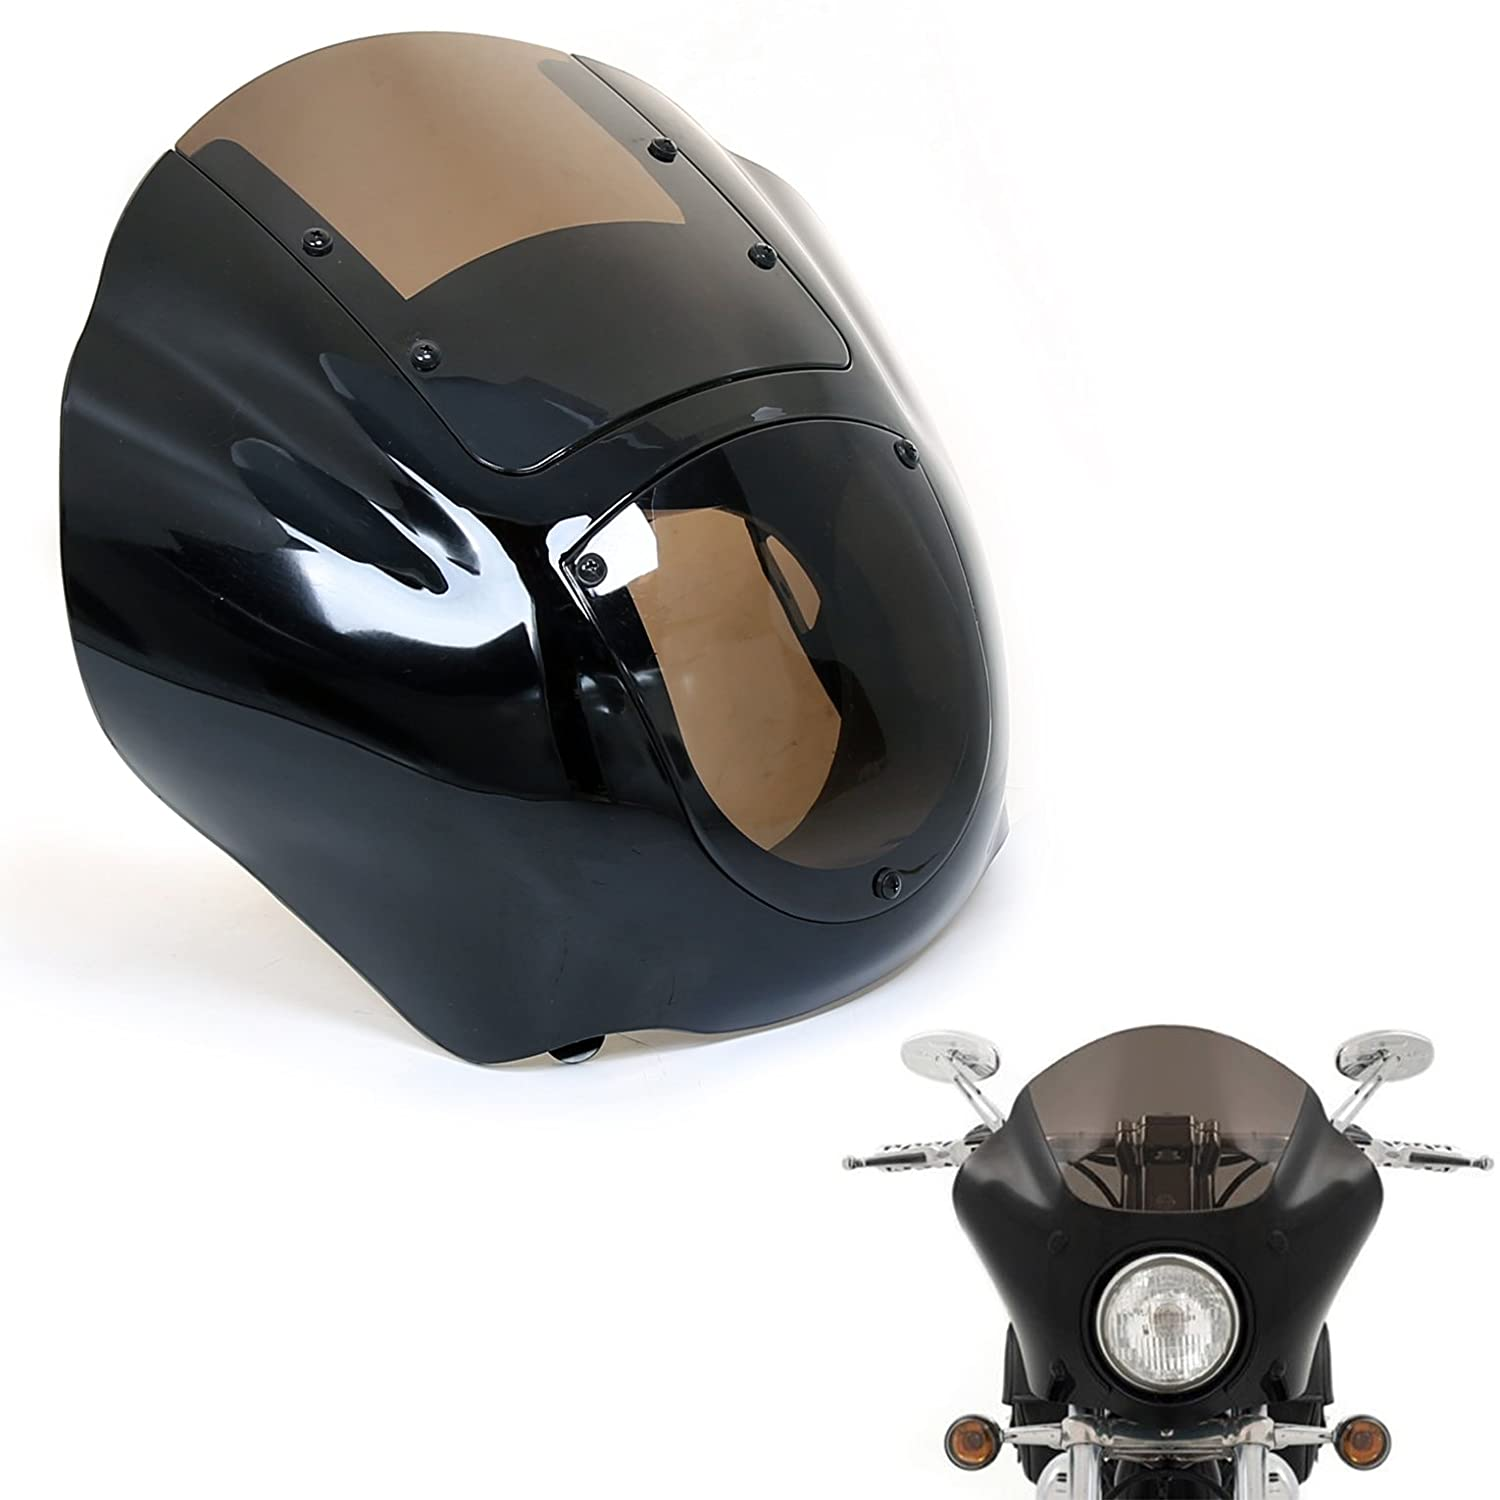 ECOTRIC Smoked Quarter Fairing Windshield For Harley 88 Up Sportster XL 95-05 Dyna 86-94 FXR